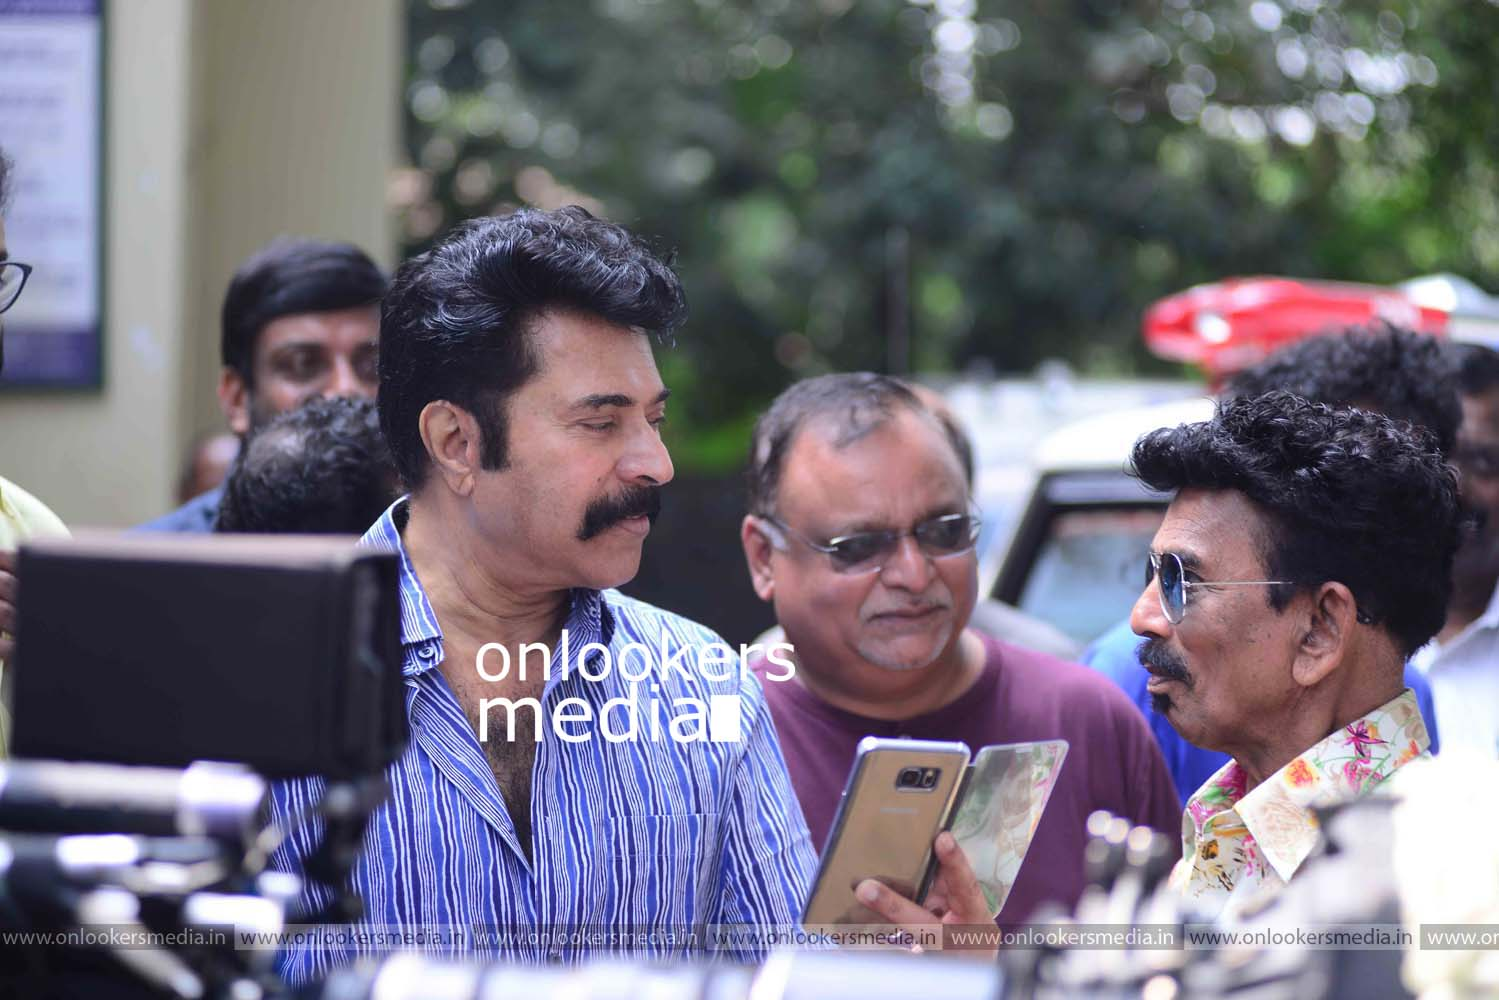 http://onlookersmedia.in/wp-content/uploads/2016/11/Puthan-Panam-Pooja-Stills-Photos-Mammootty-Ranjith-10.jpg